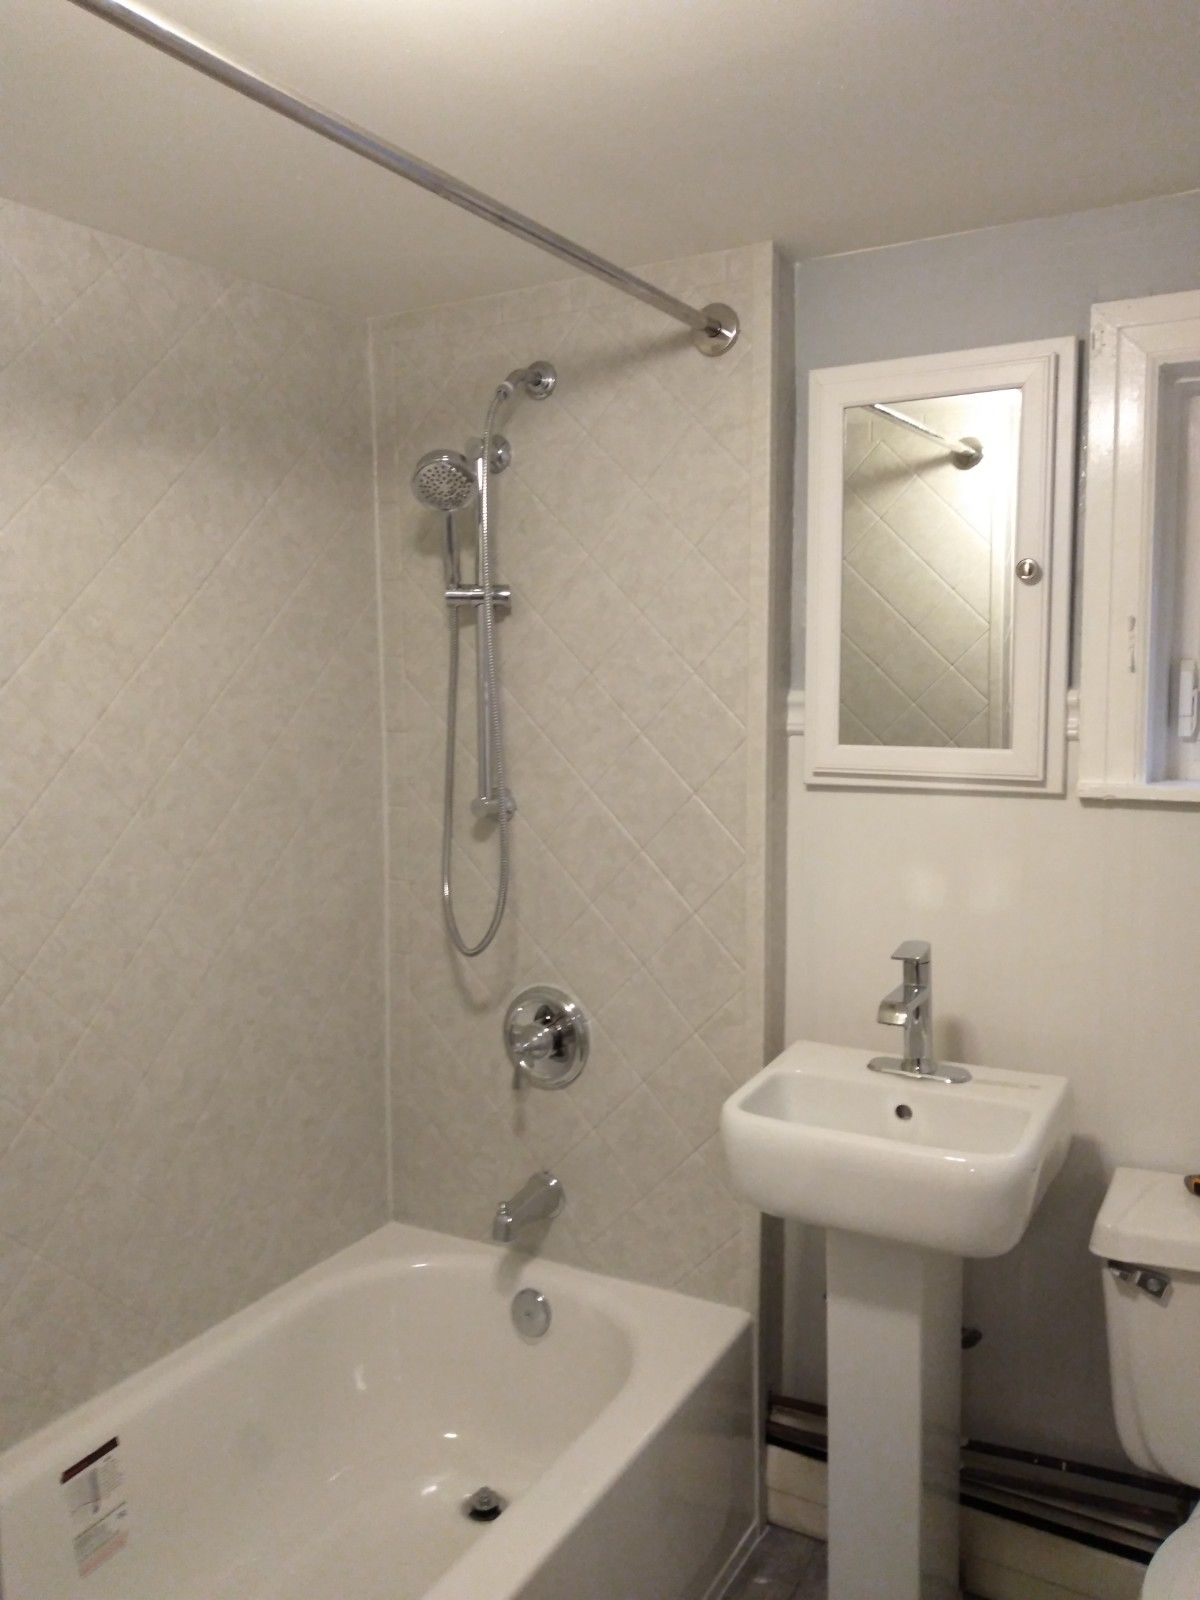 Bathroom Remodeling Services In 2020 Tub To Shower Conversion Bathroom Remodeling Services Bathrooms Remodel